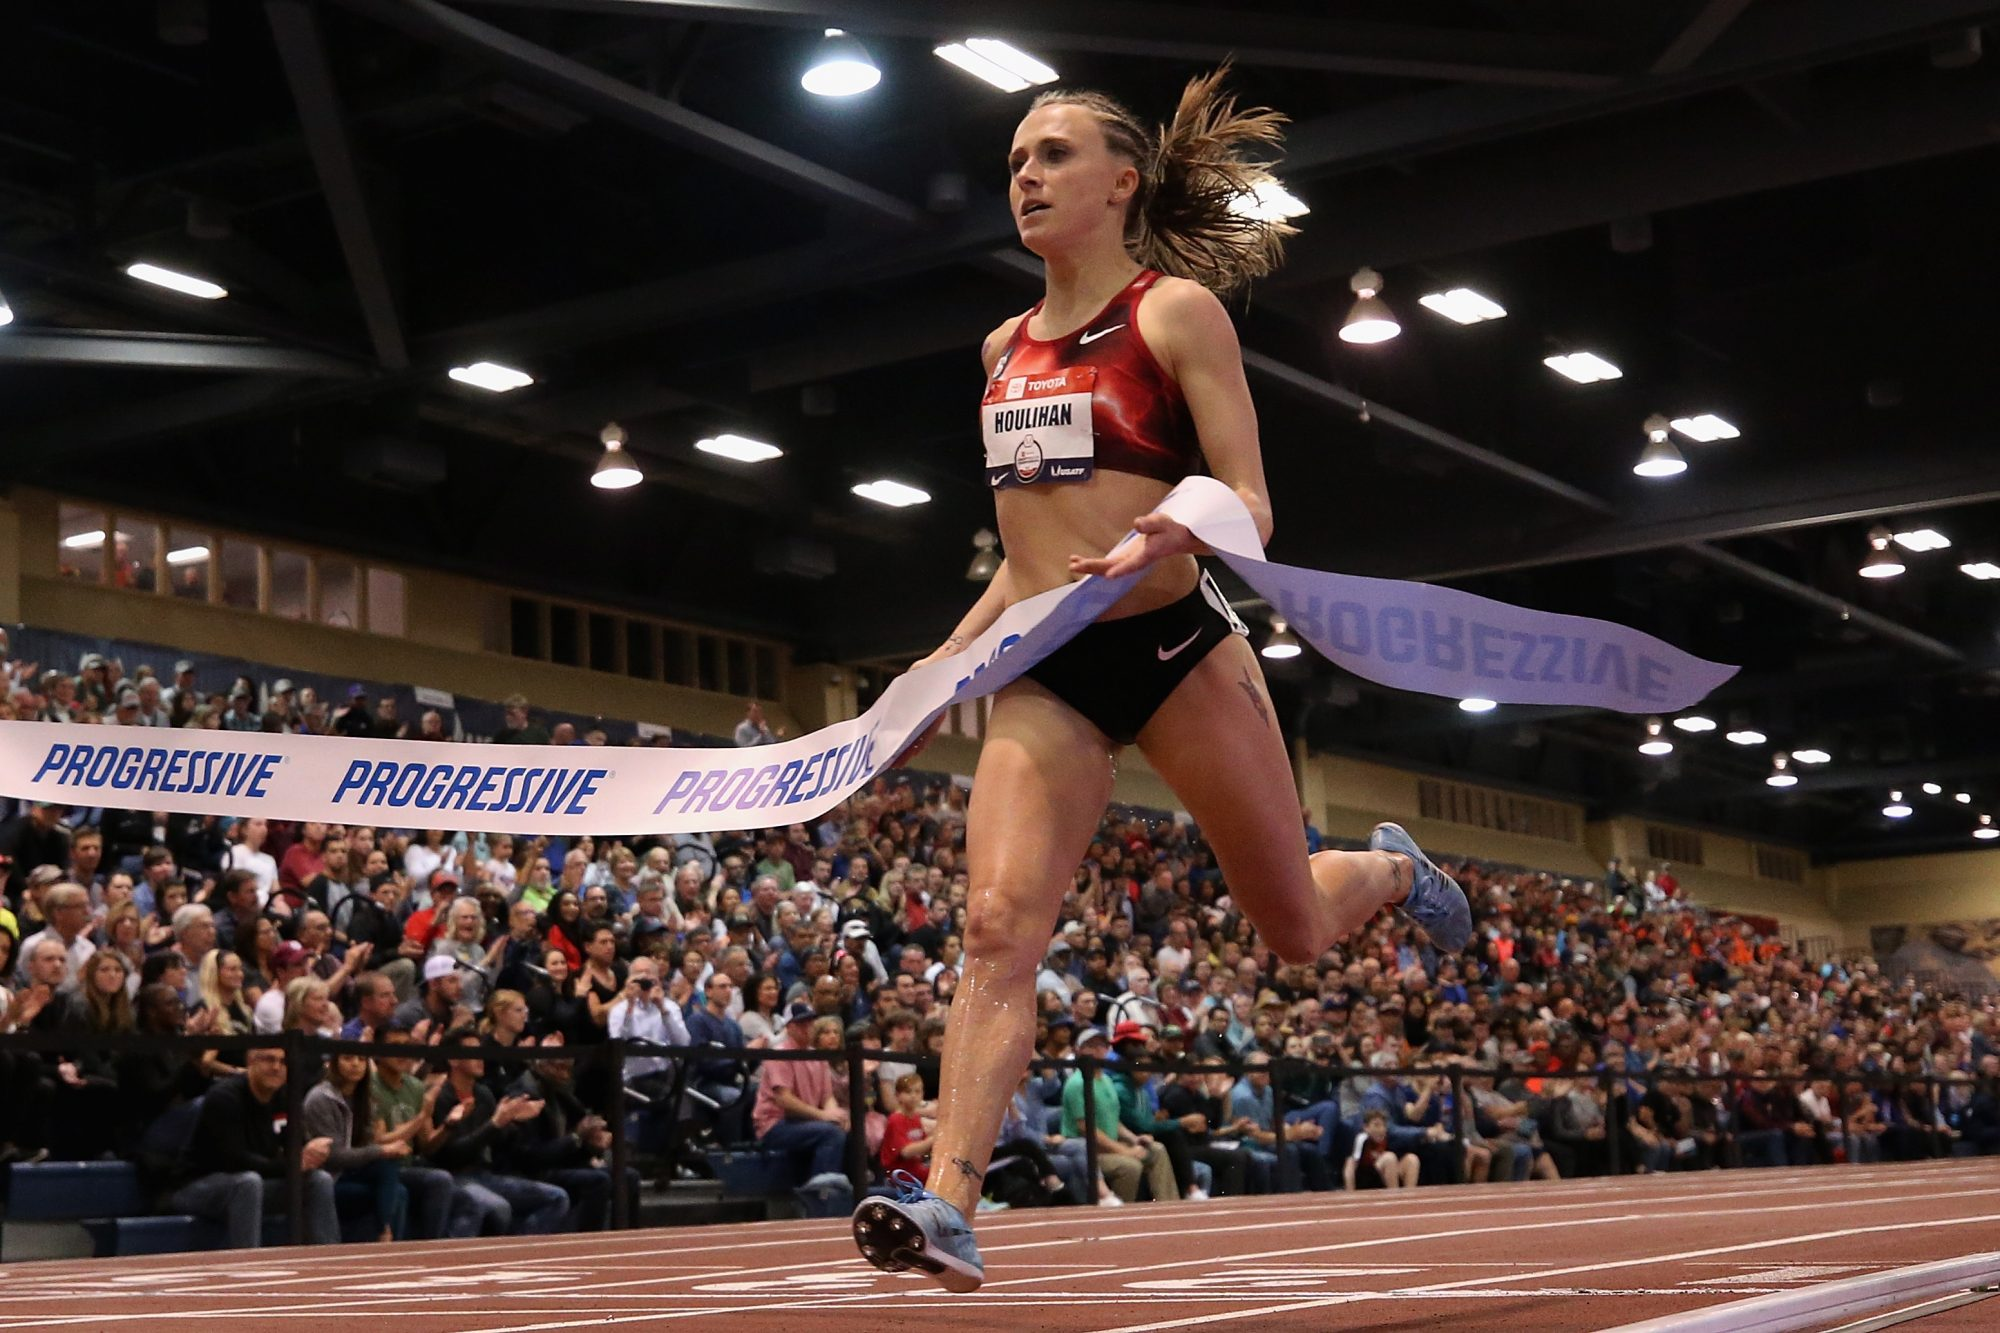 2020 Toyota USATF Indoor Championships - Day Two